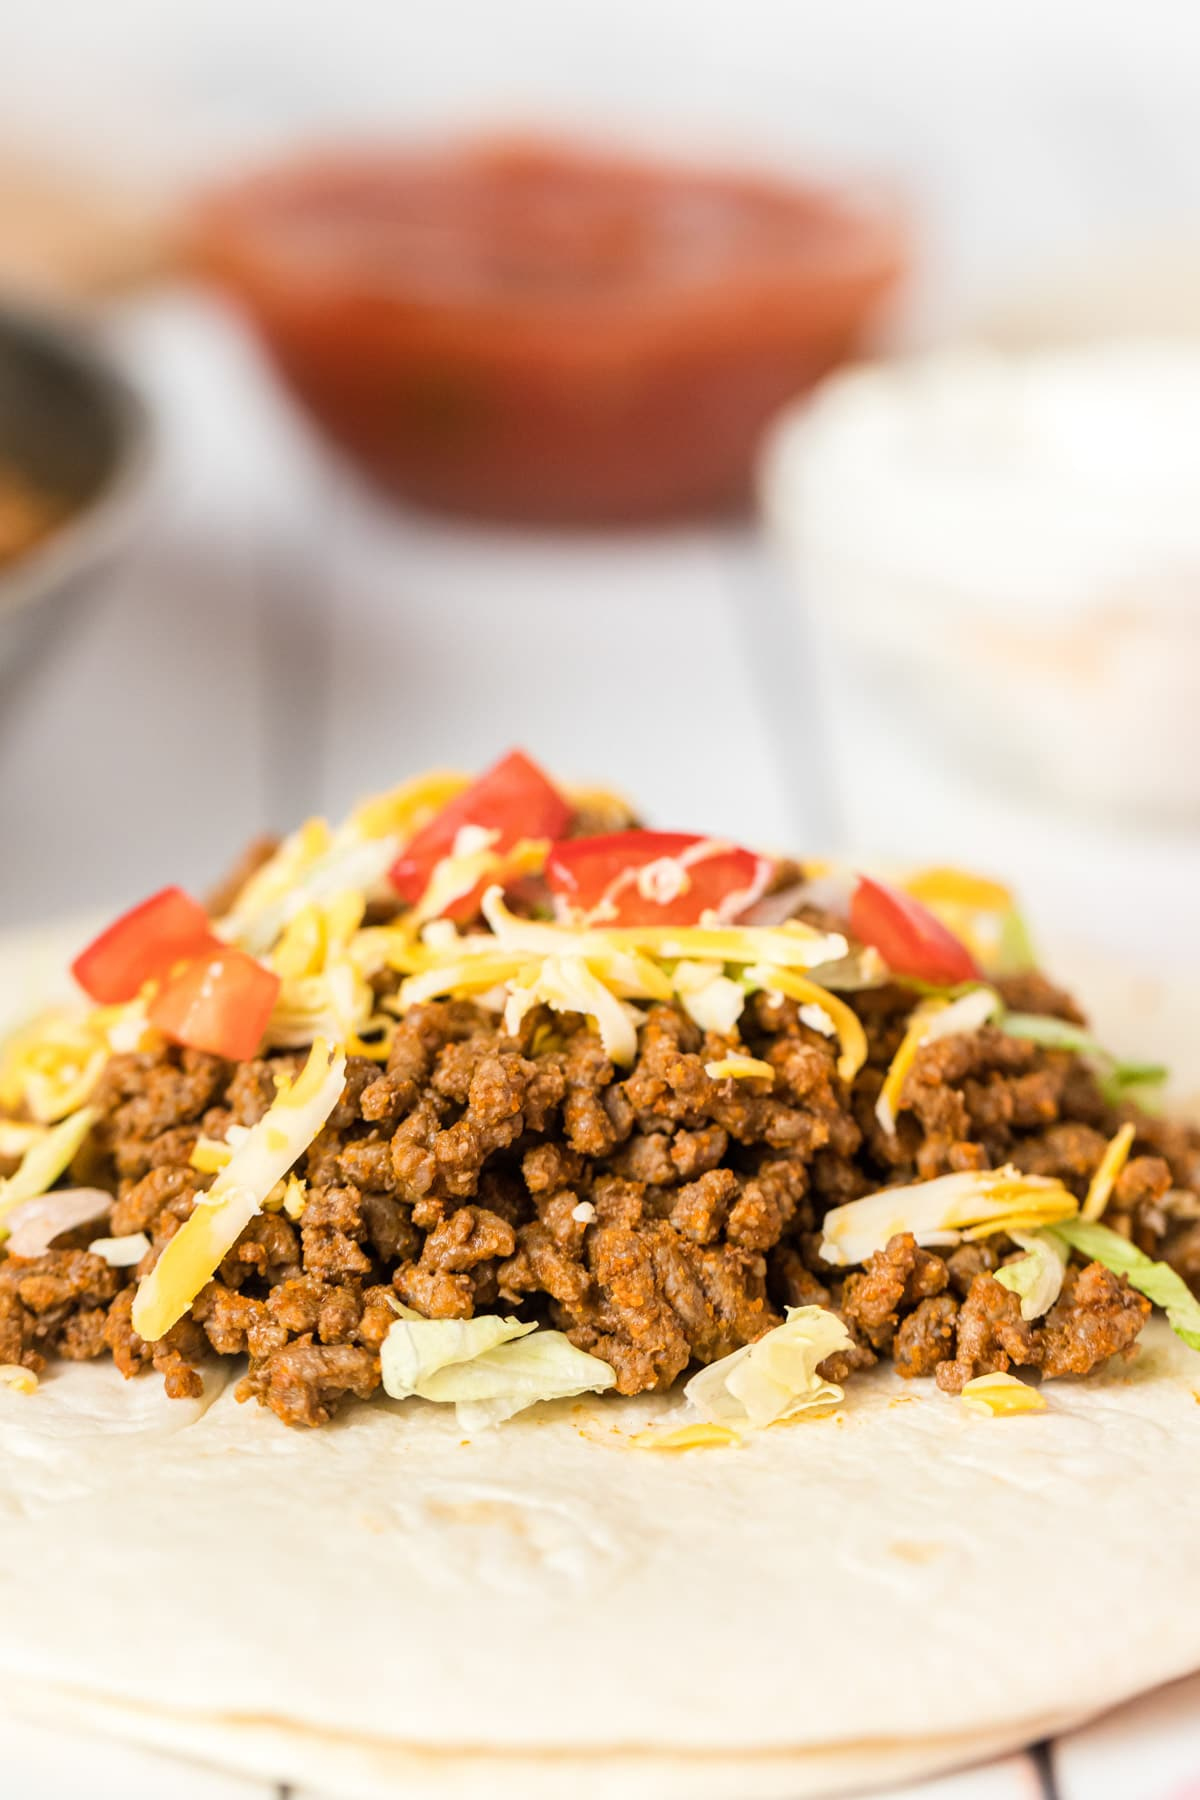 Homemade taco meat on a tortilla